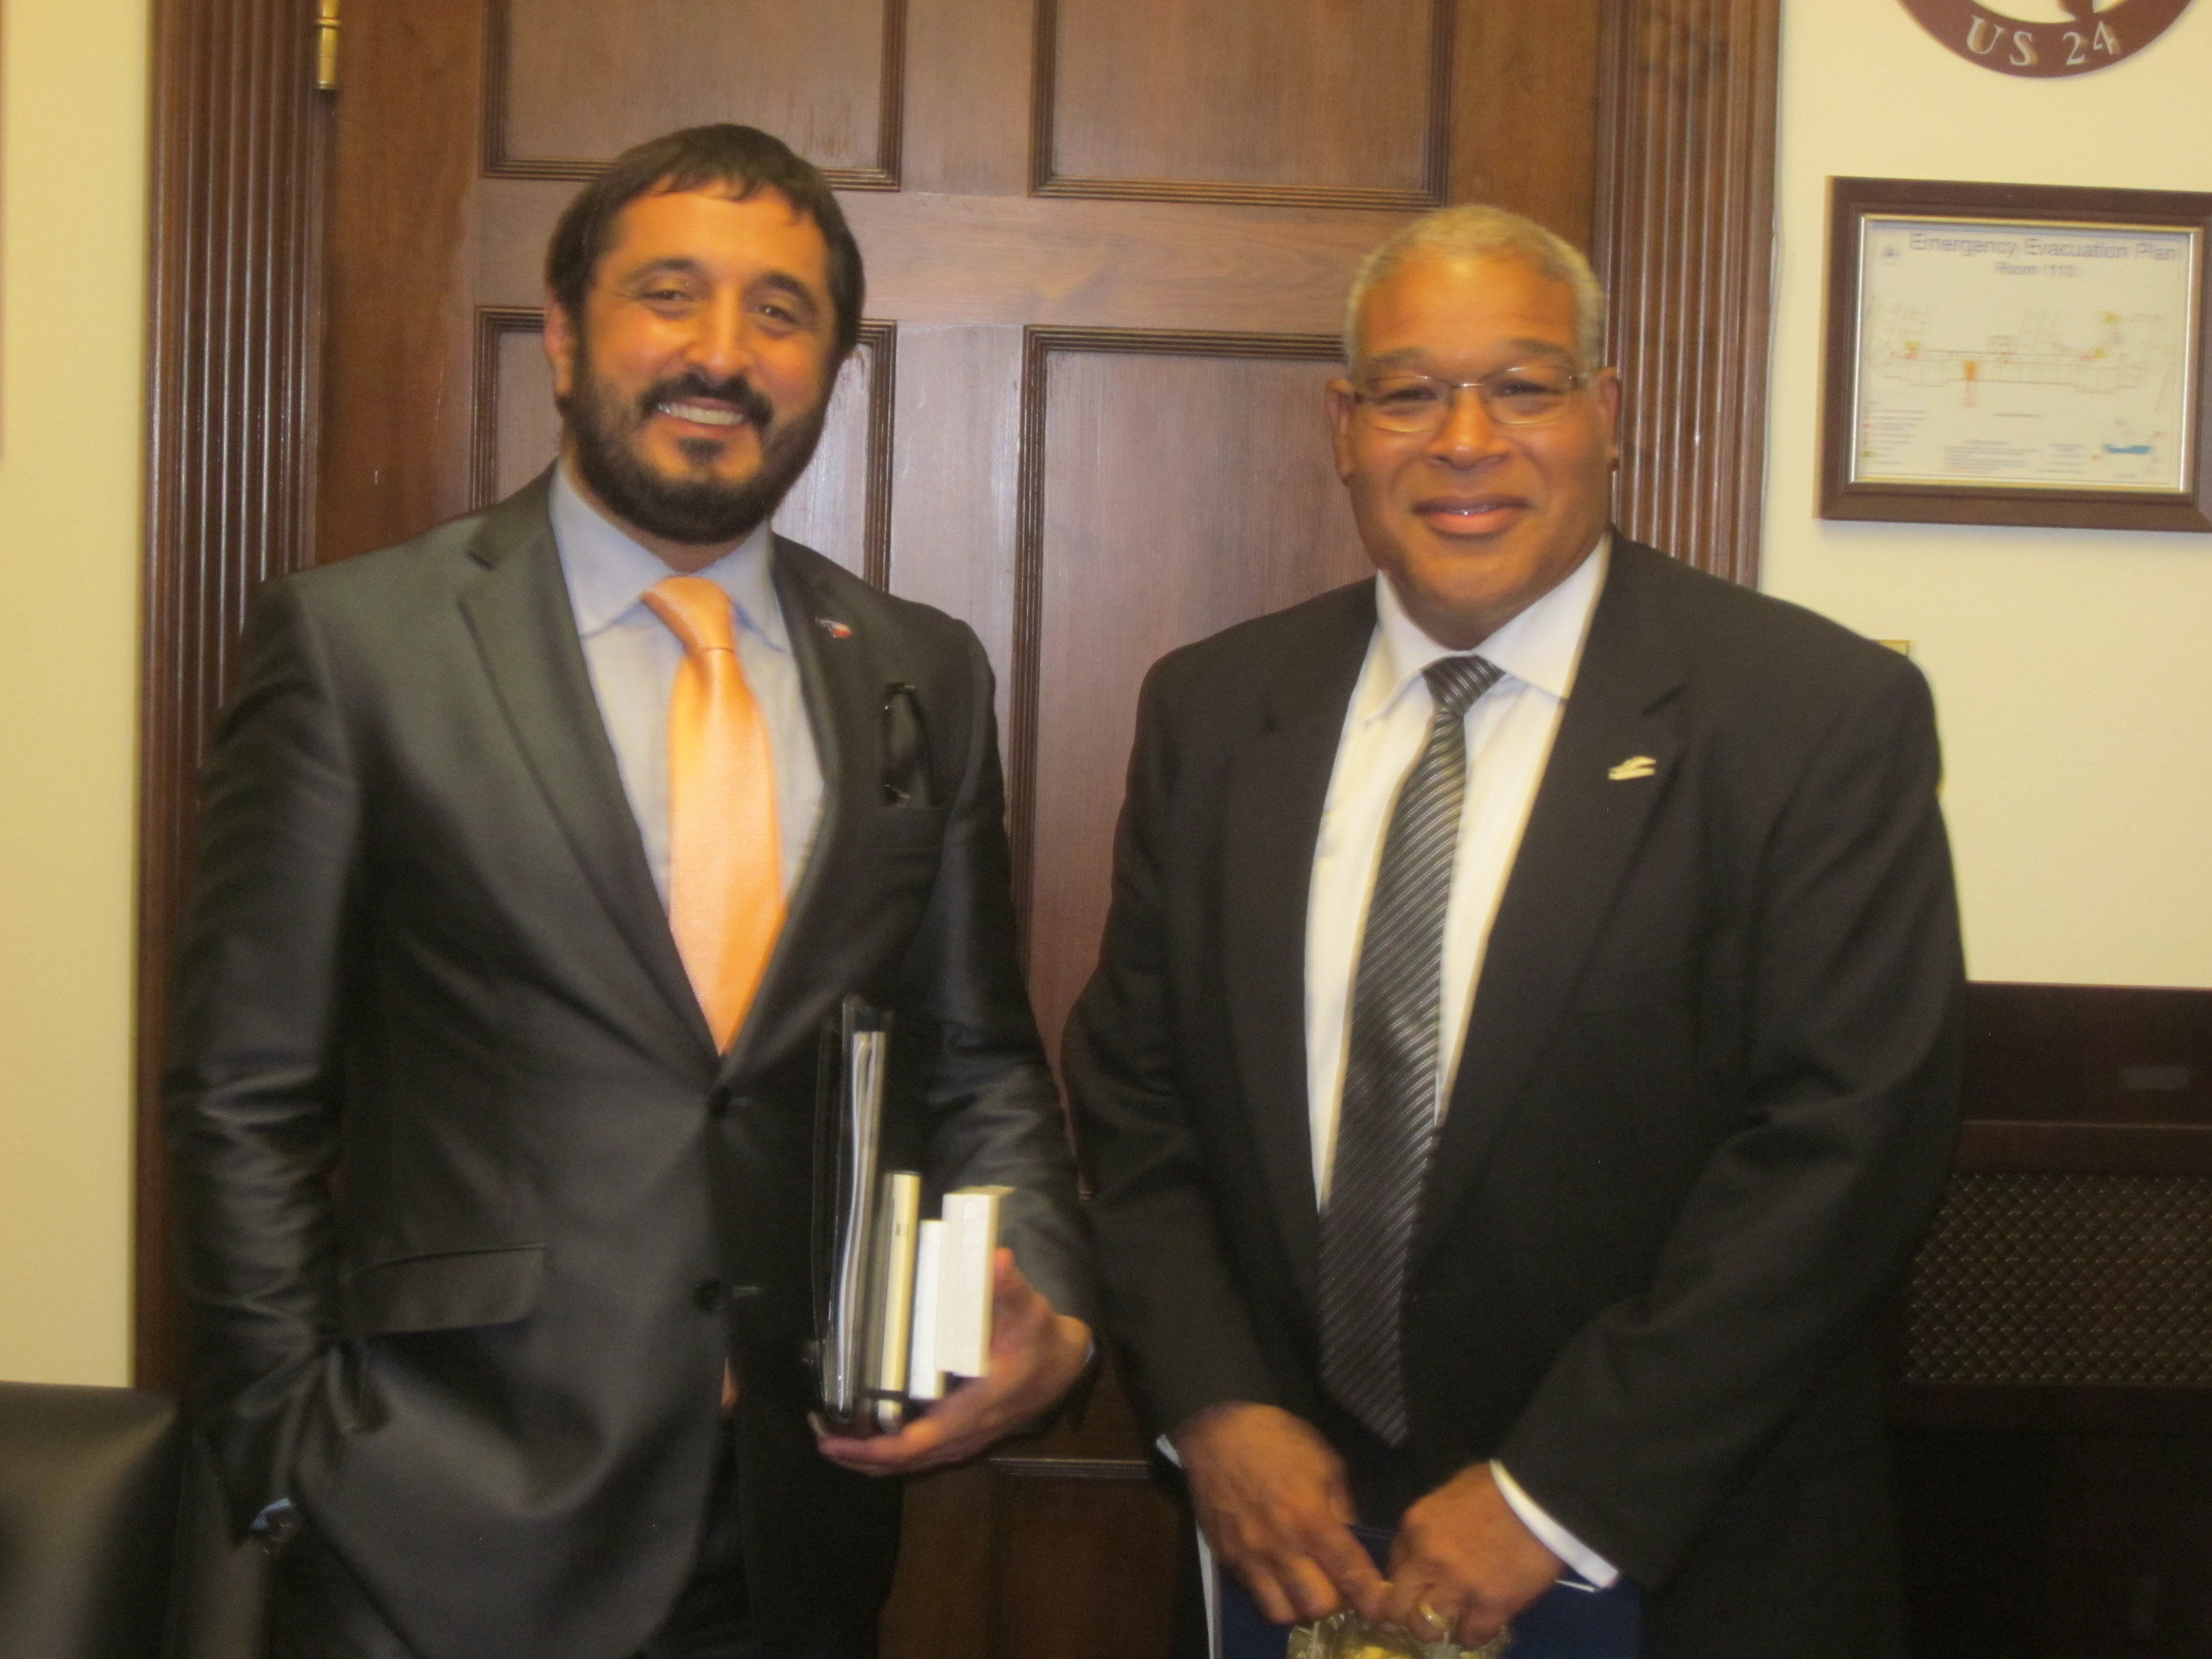 Mike Christopher withAmir Mirabi – Director of Small Business Office for Texas Governor Rick Perry.